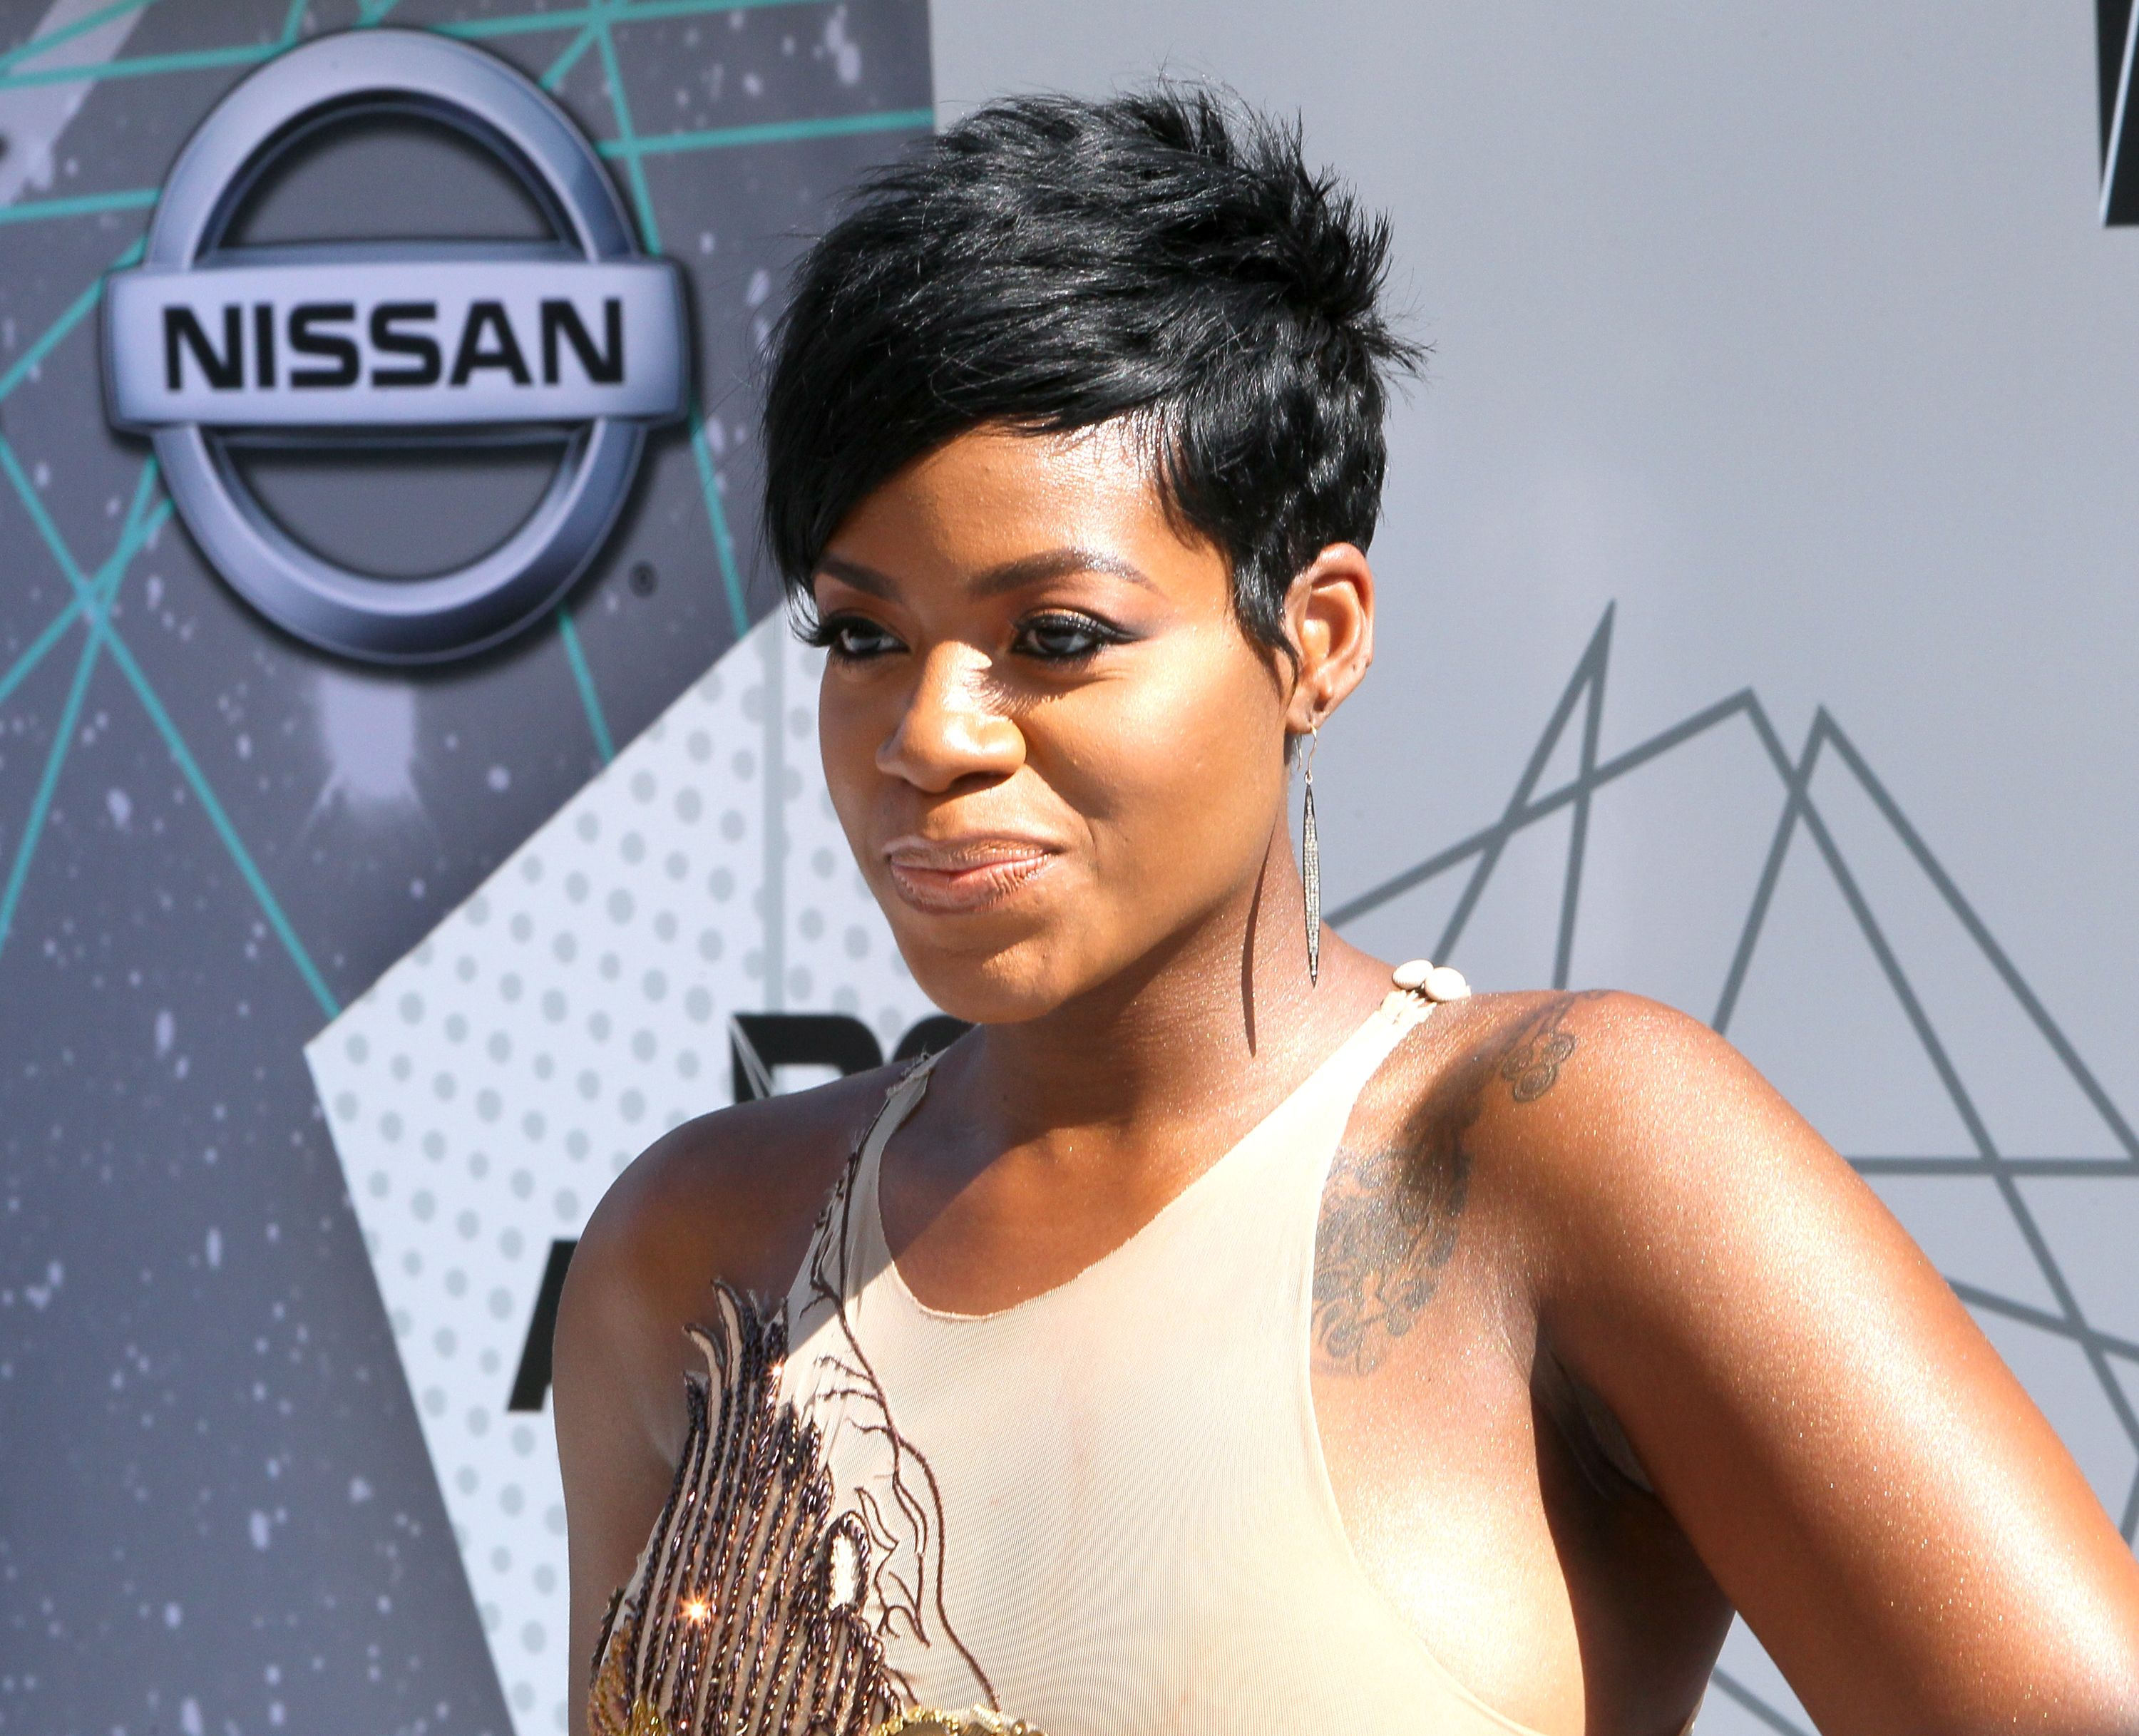 Singer Fantasia Barrino attends the 2016 BET Awards at Microsoft Theater on June 26, 2016. | Source: Getty Images